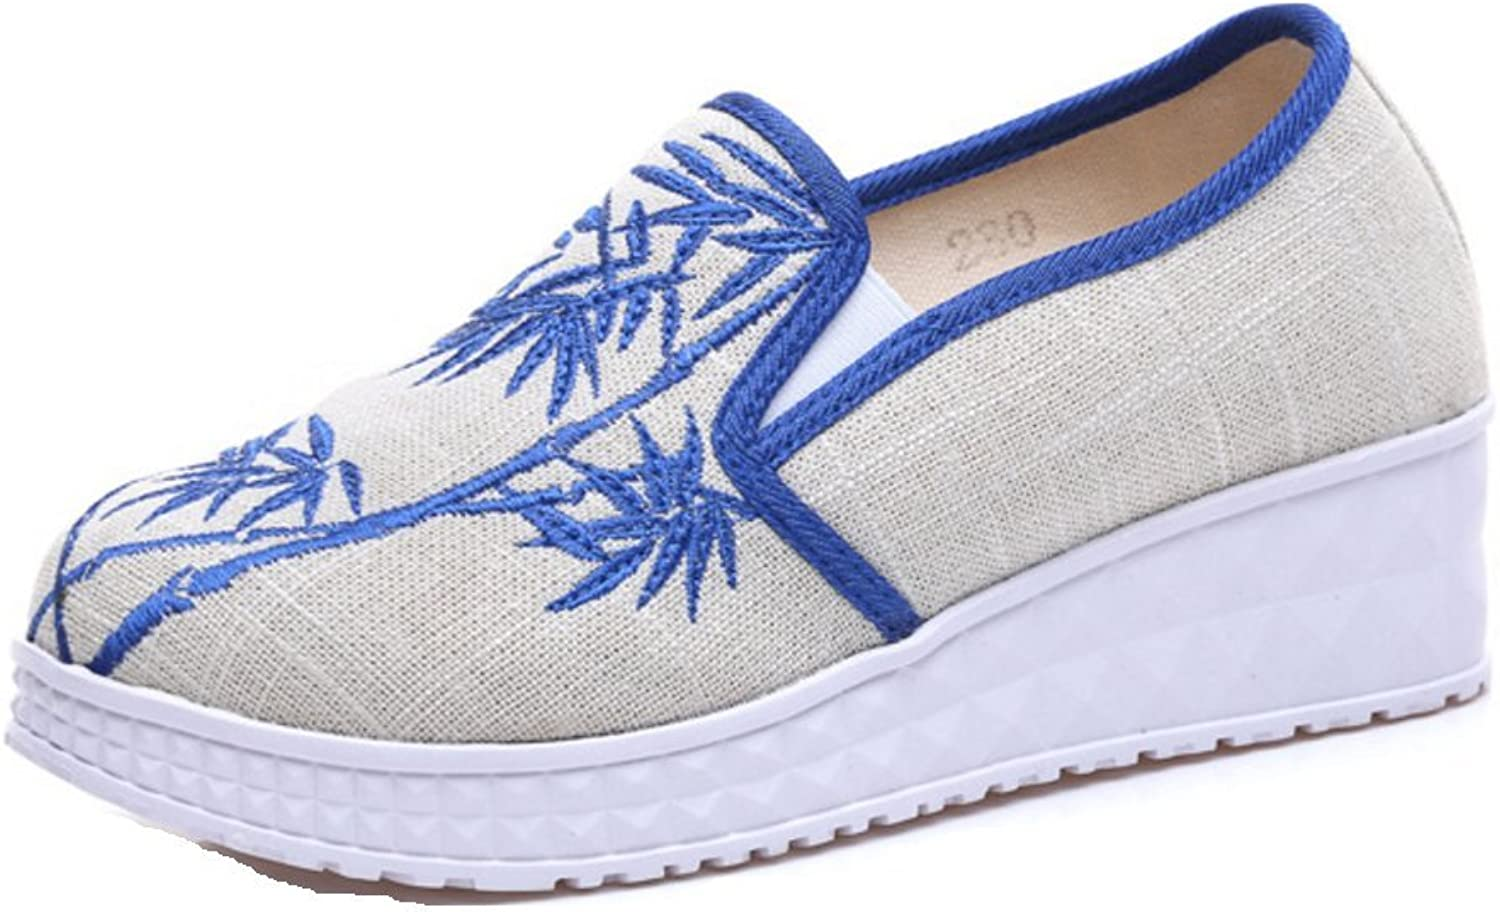 Tianrui Crown Women and Ladies Bamboo Leaf Embroidery Wedge Platform Casual Sneaker shoes